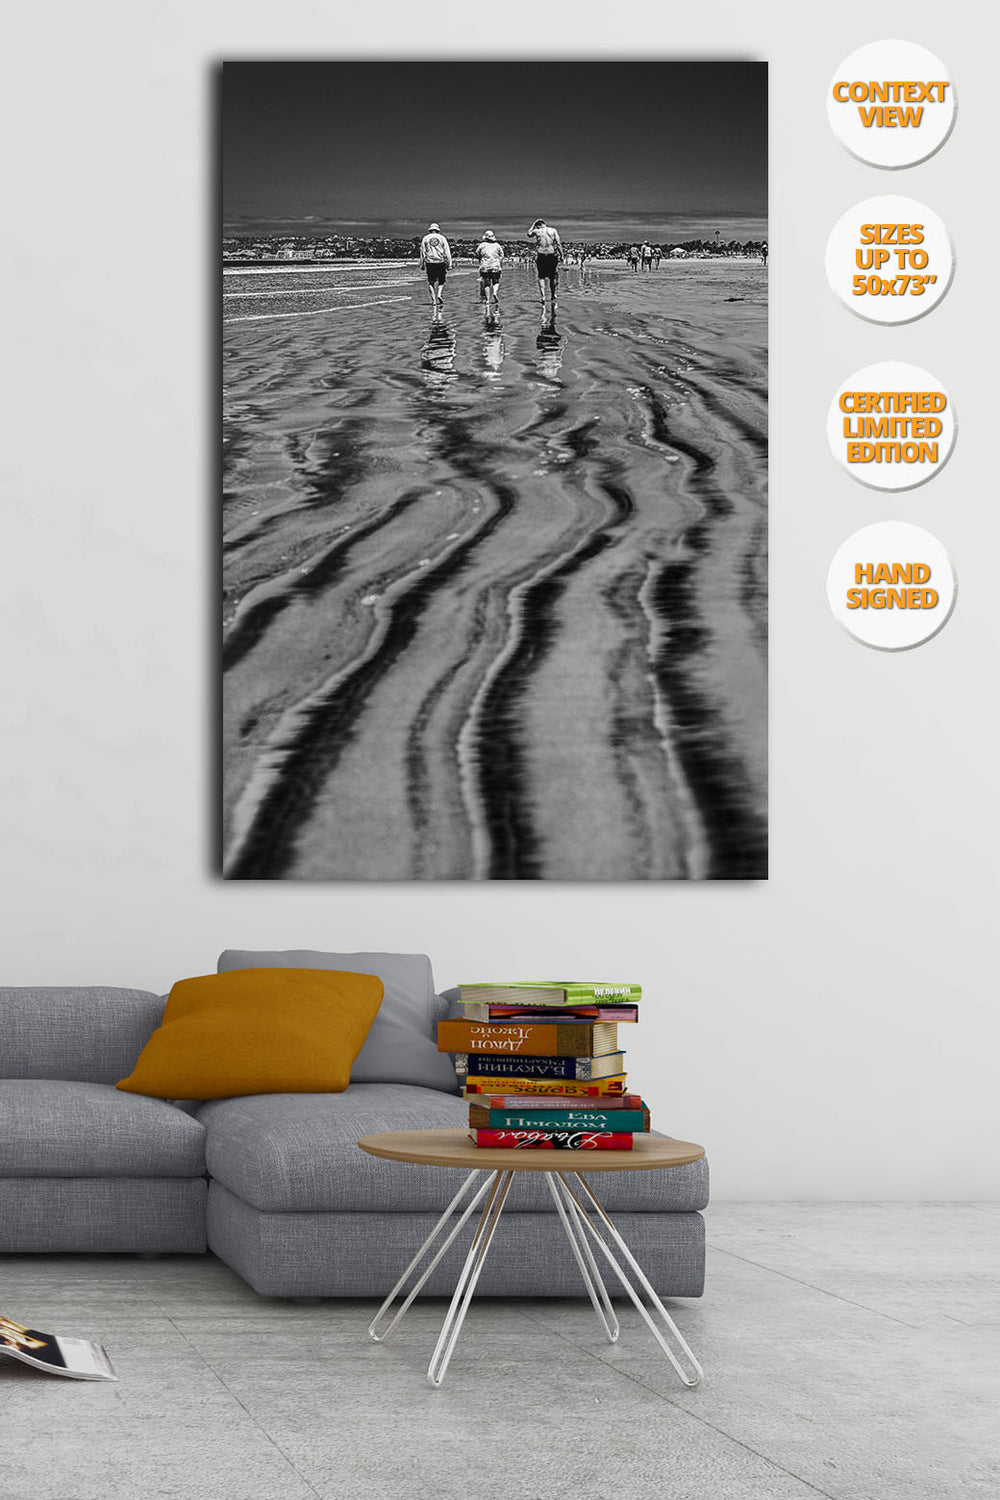 Coronado Beach, San Diego, California. | Hanged on living room.